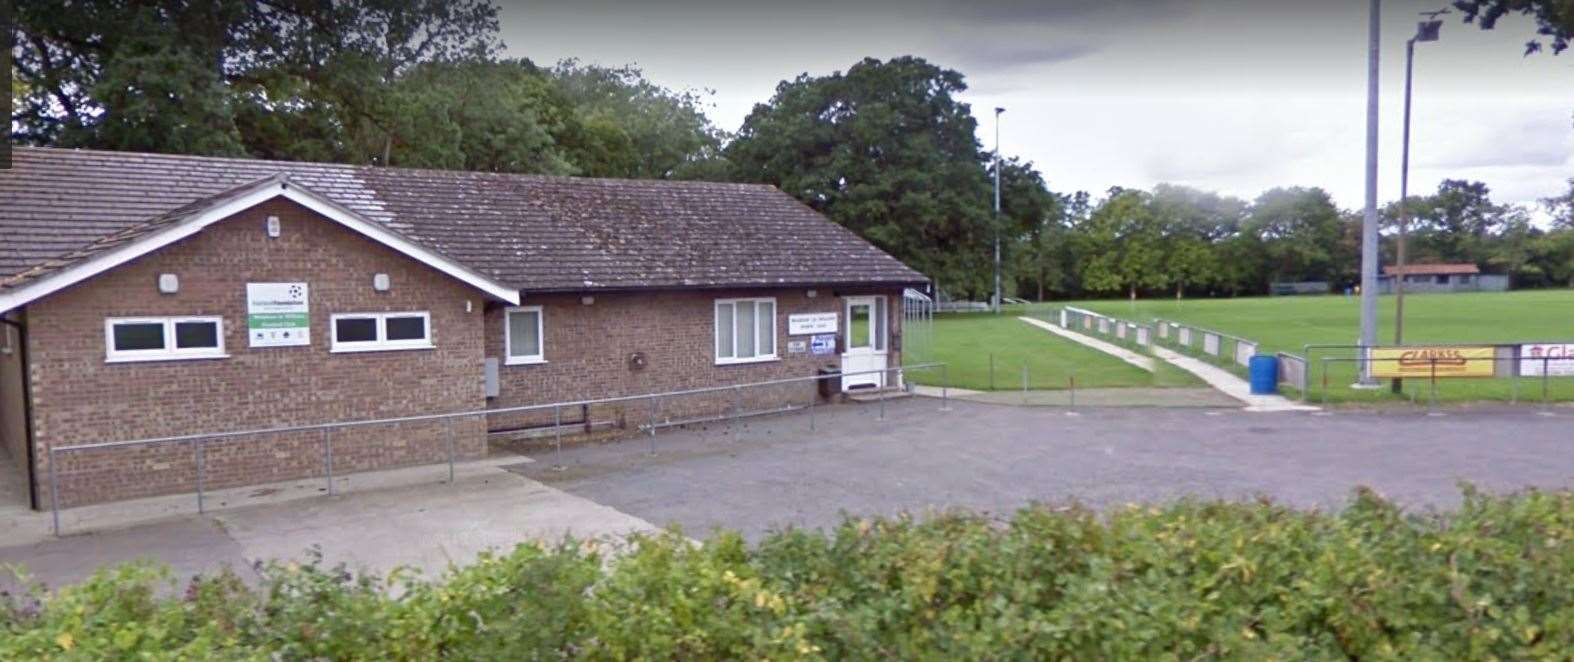 The Walsham-le-Willows Sports Club clubhouse as seen from Summer RoadPicture: Google Streetview (39053292)